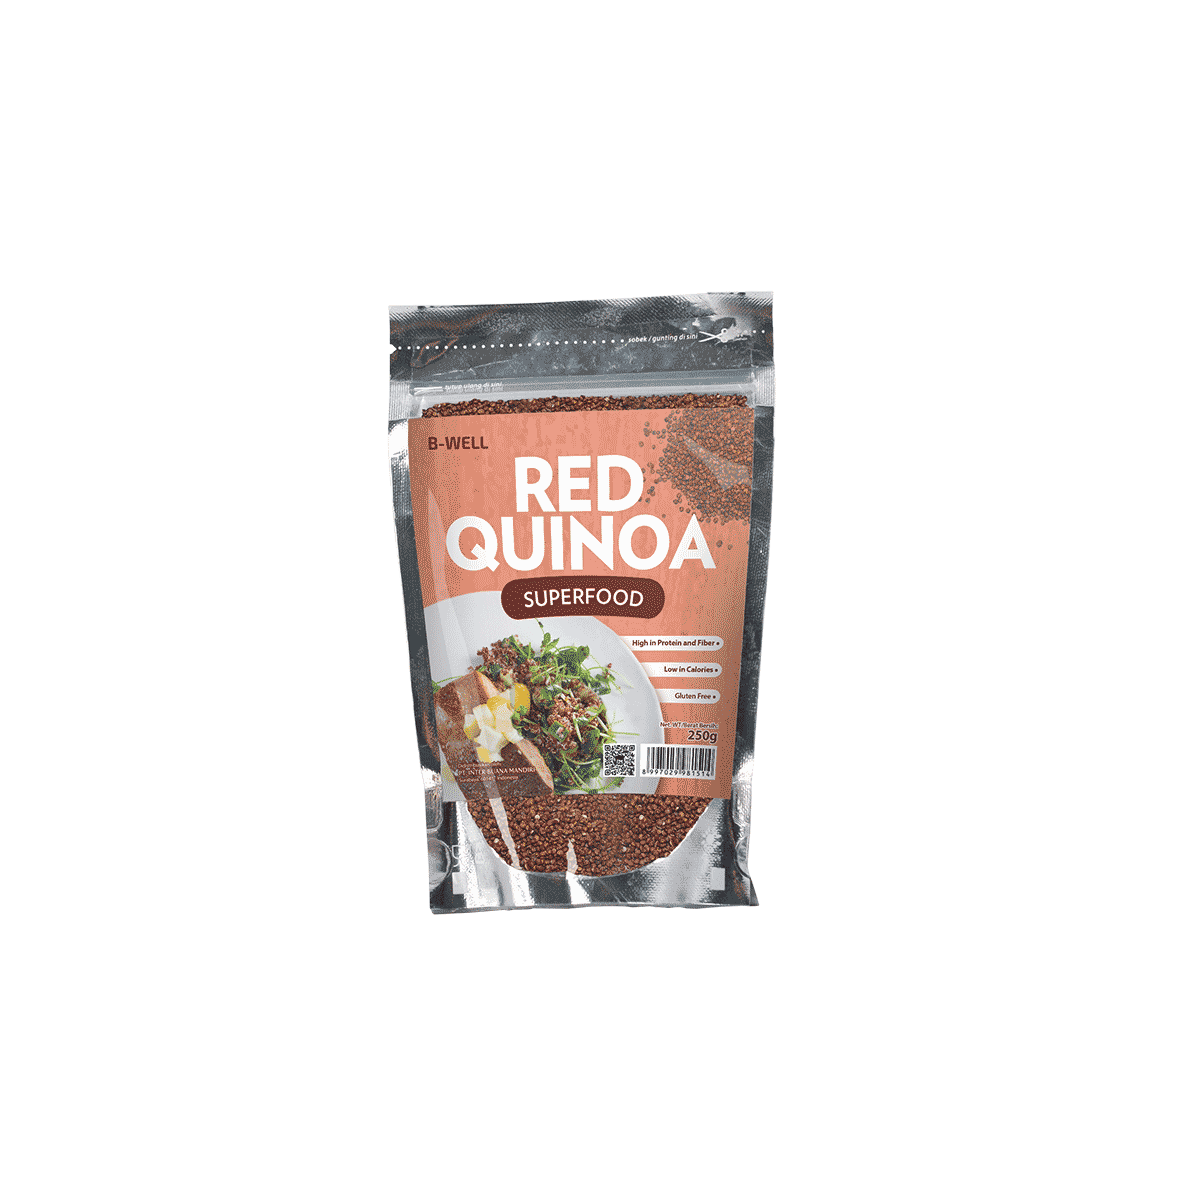 B-Well Red Quinoa Superfood Inter Buana Mandiri